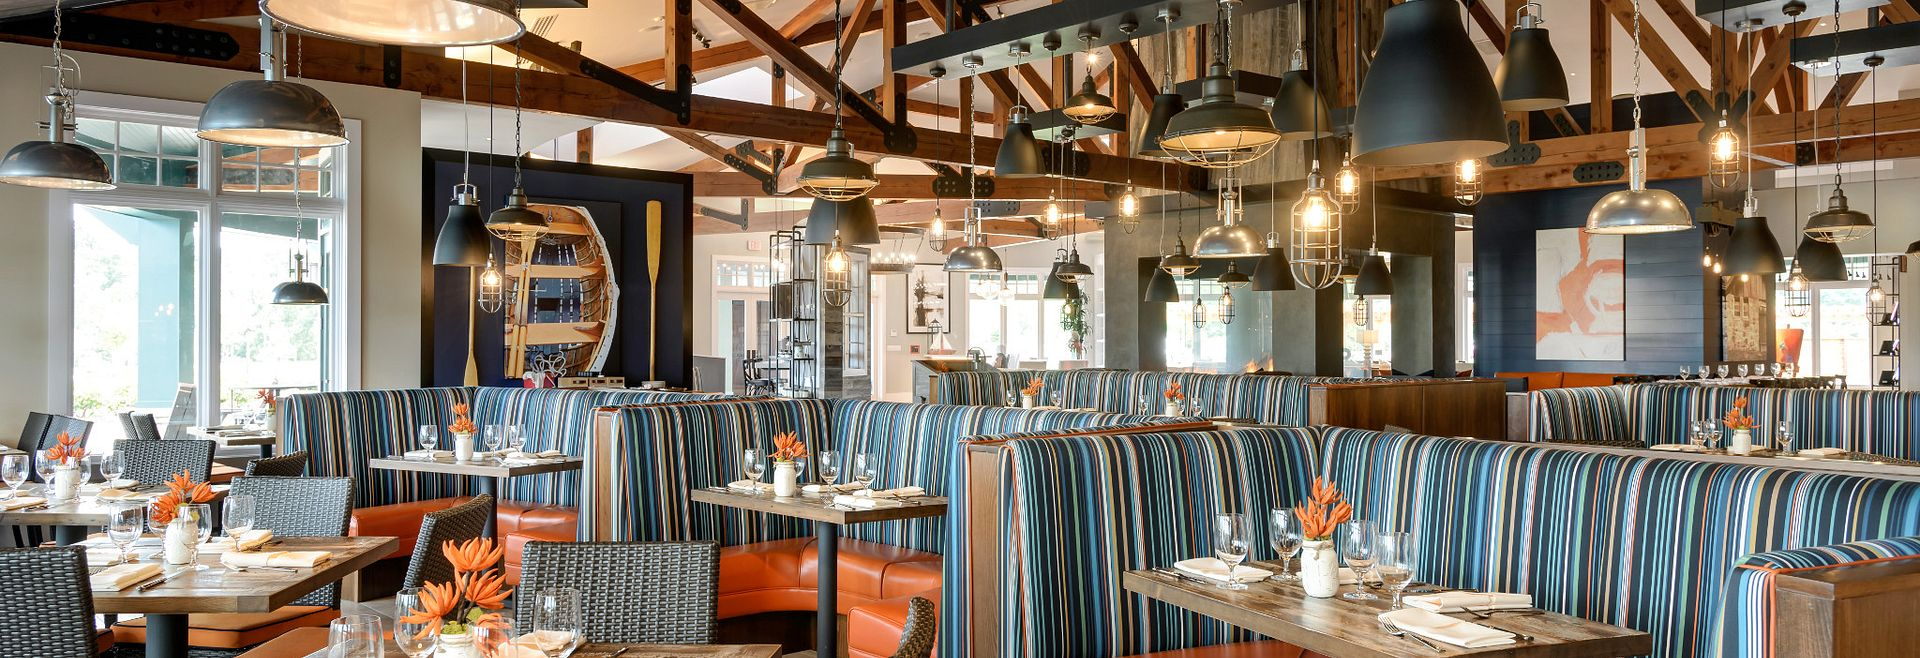 Region's 117 Restaurant at Trilogy Lake Frederick by Shea Homes